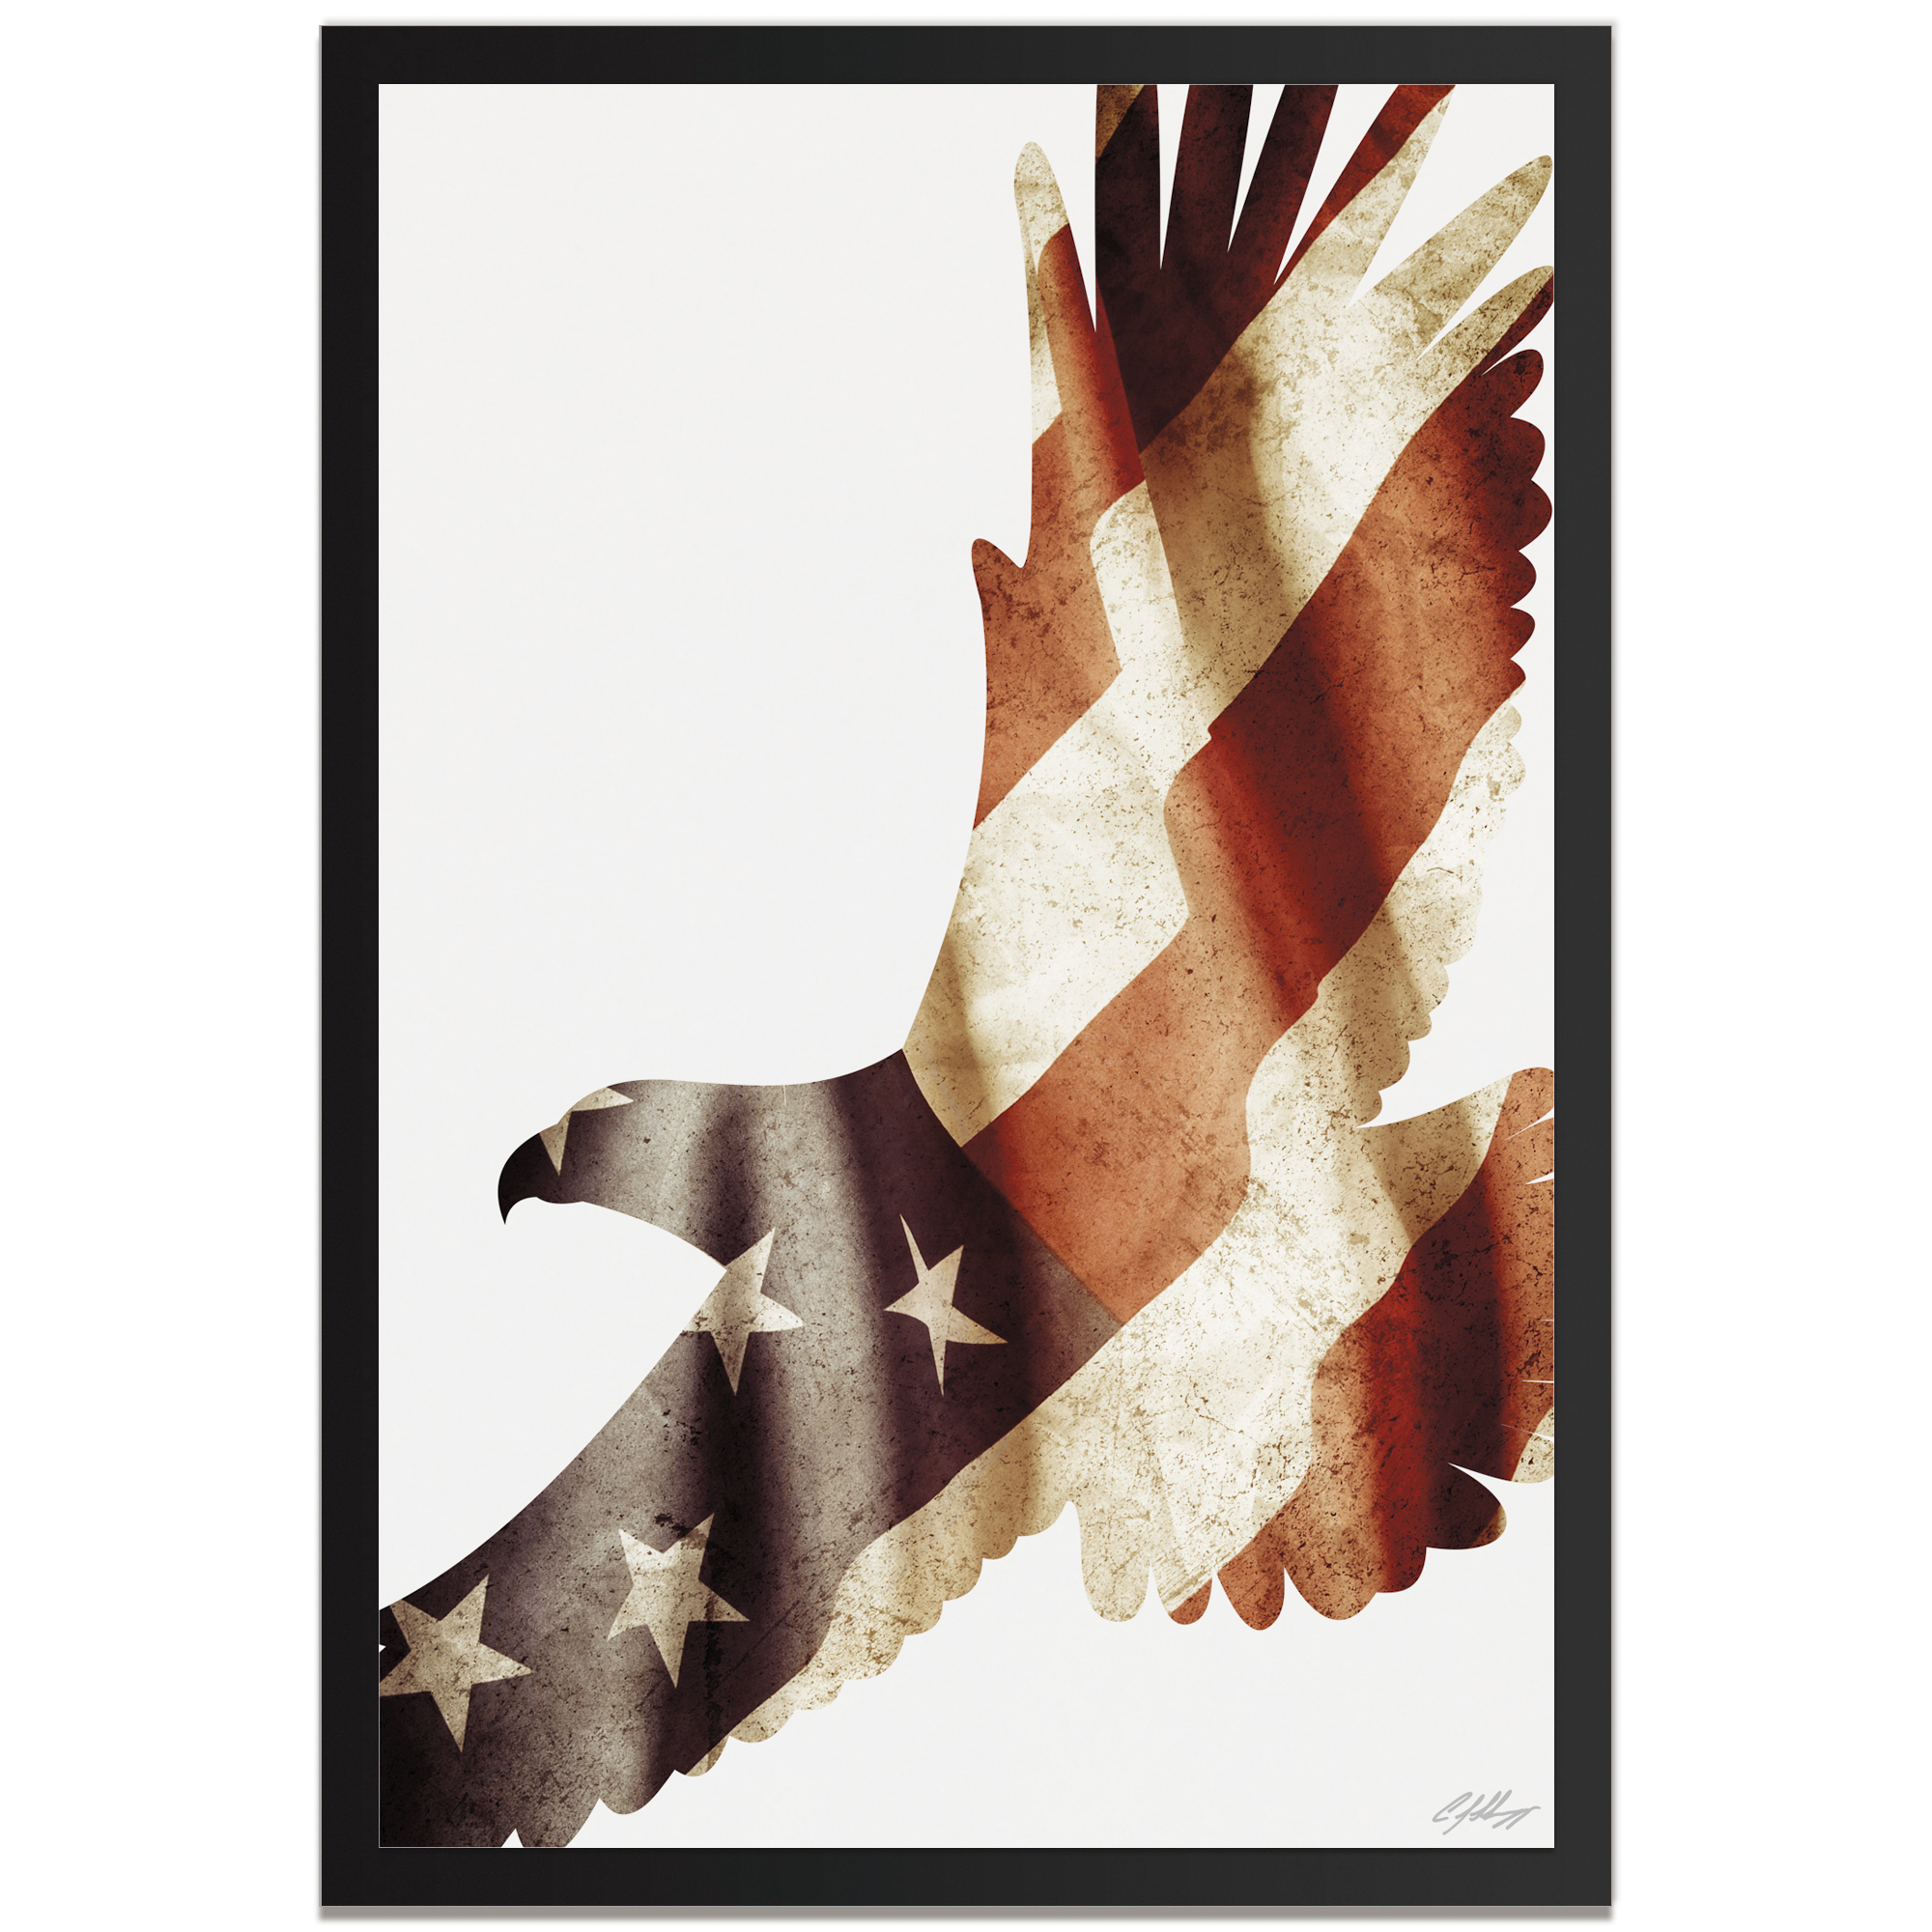 Adam Schwoeppe 'Freedom Eagle Framed' 22in x 32in Patriotic US Flag Art on Colored Metal